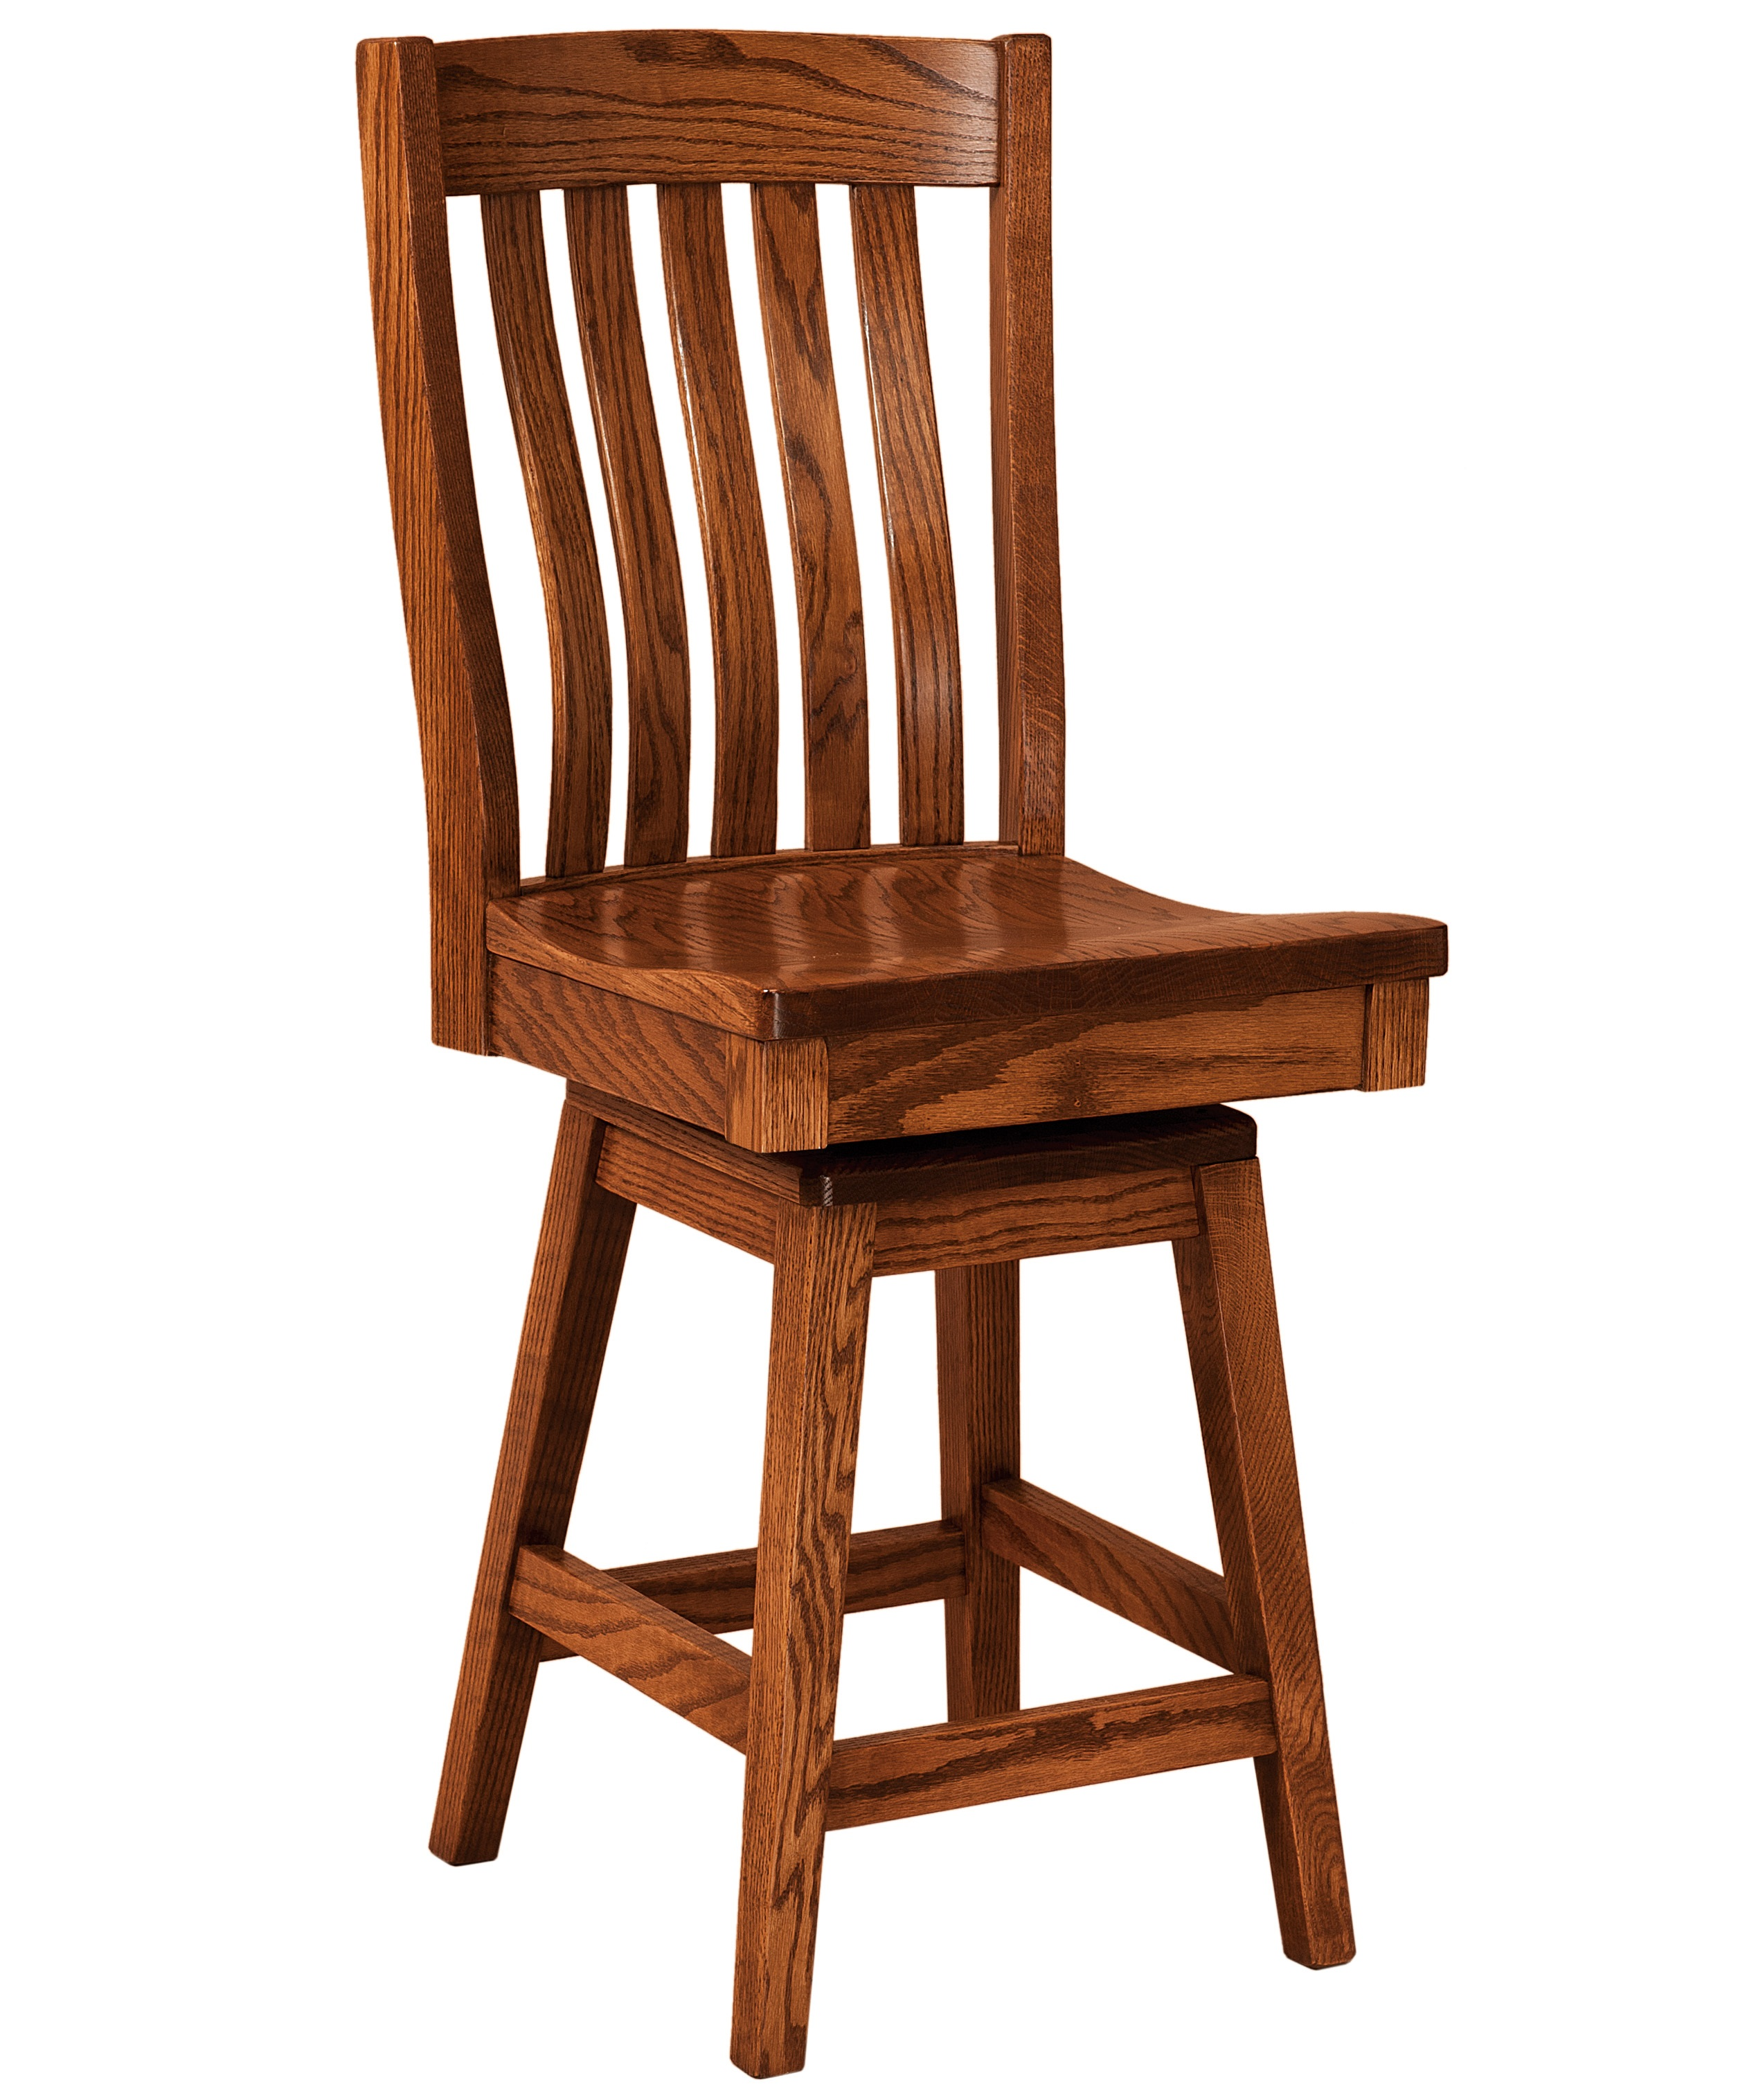 FN Amish Chairs  Swivel Counter Height Stool  Wood Seat